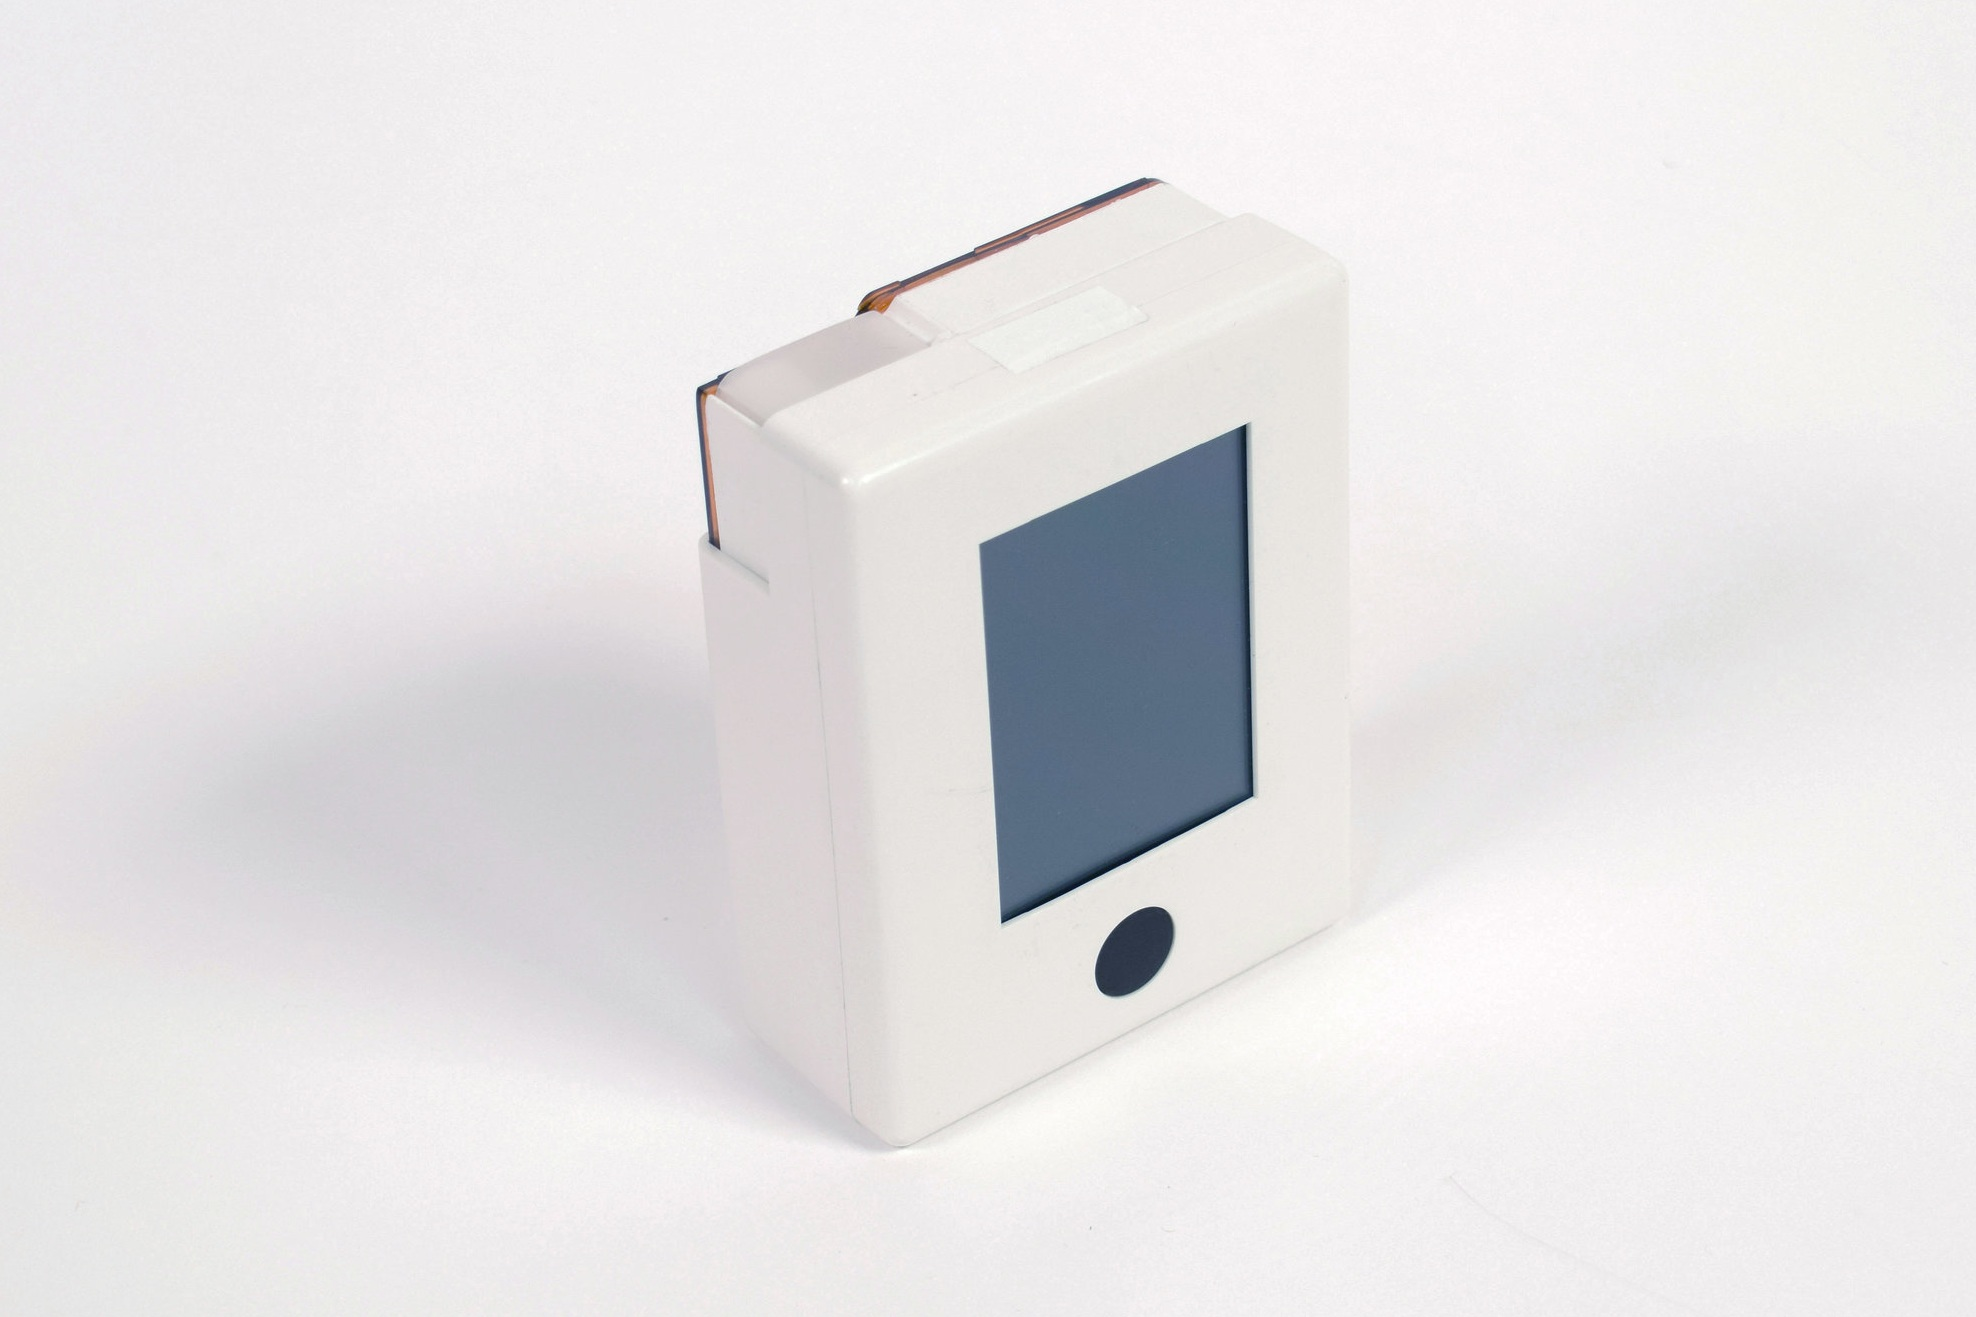 The second generation MedicaSafe device, with a cartridge inserted